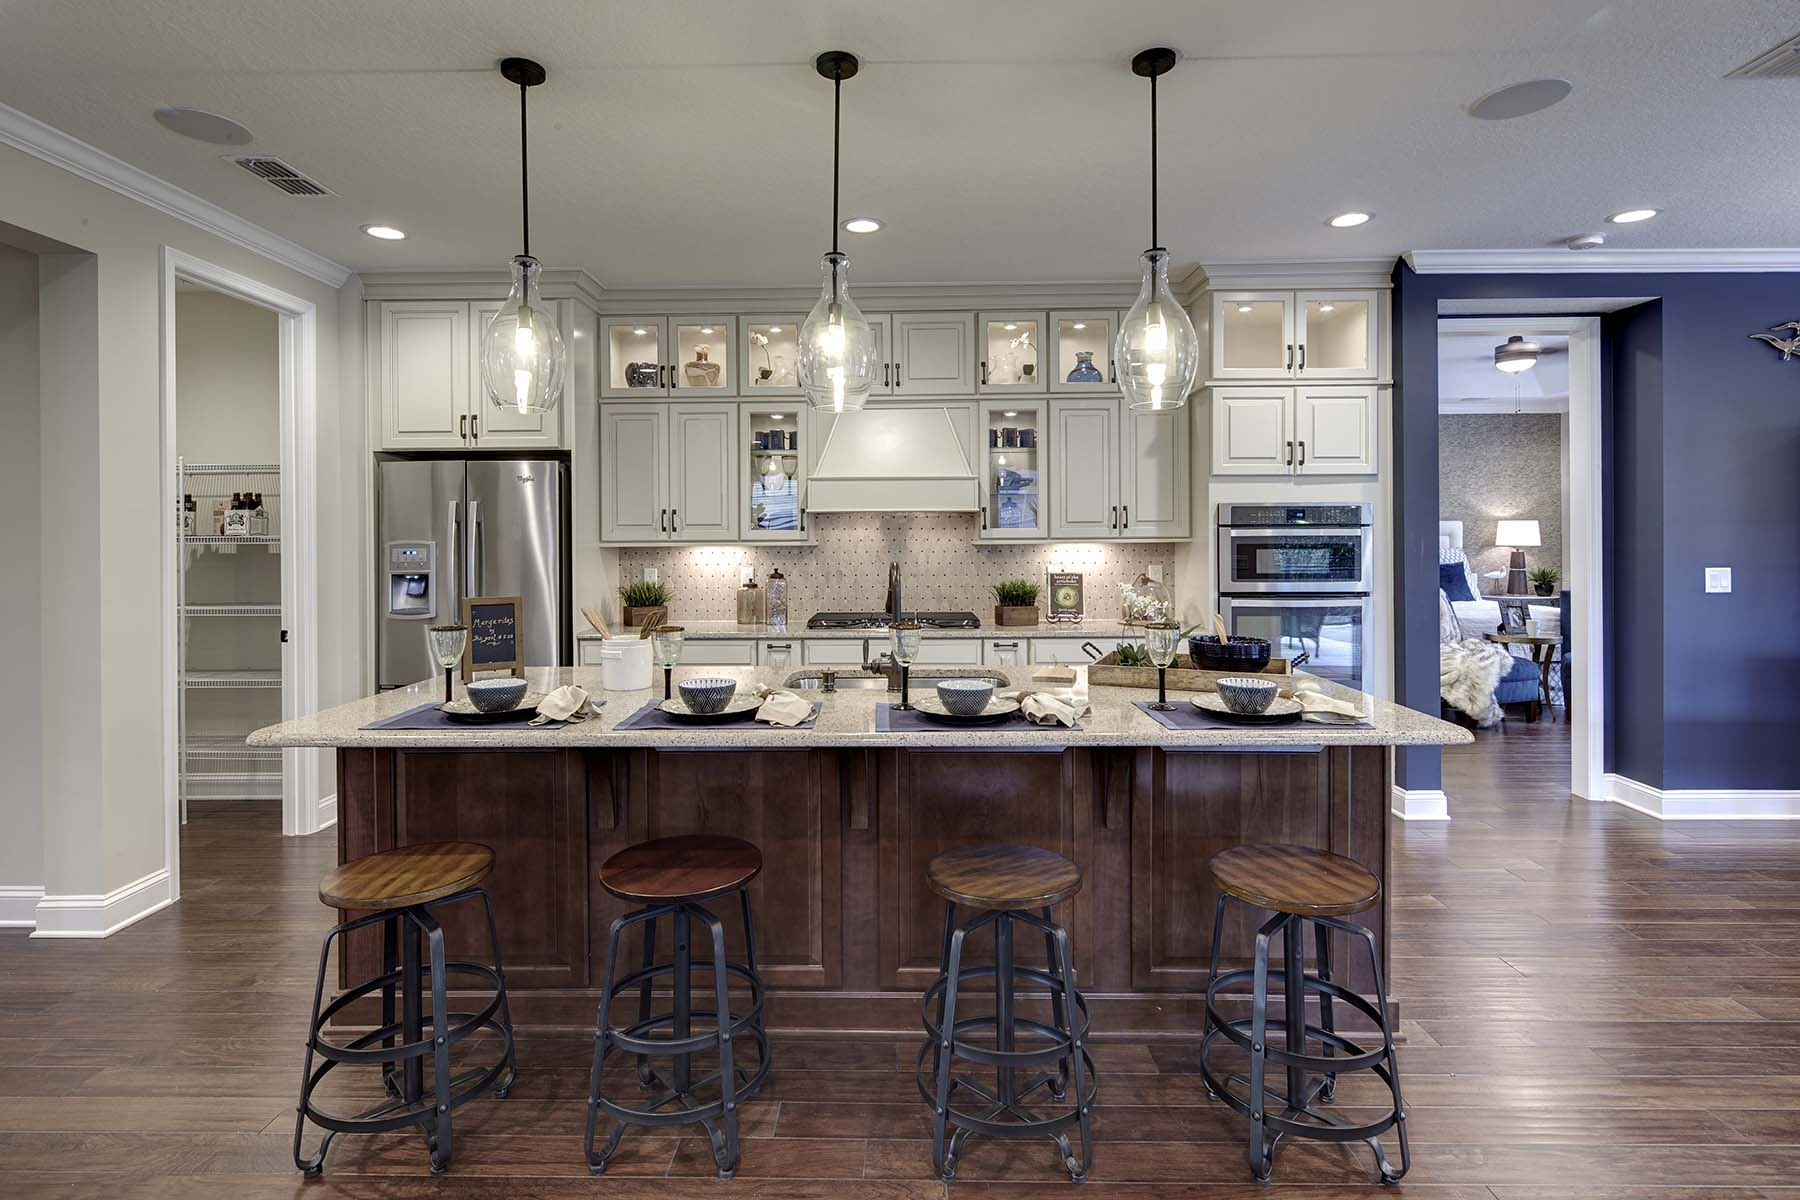 RiverTown - Arbors Kitchen in St. Johns Florida by Mattamy Homes